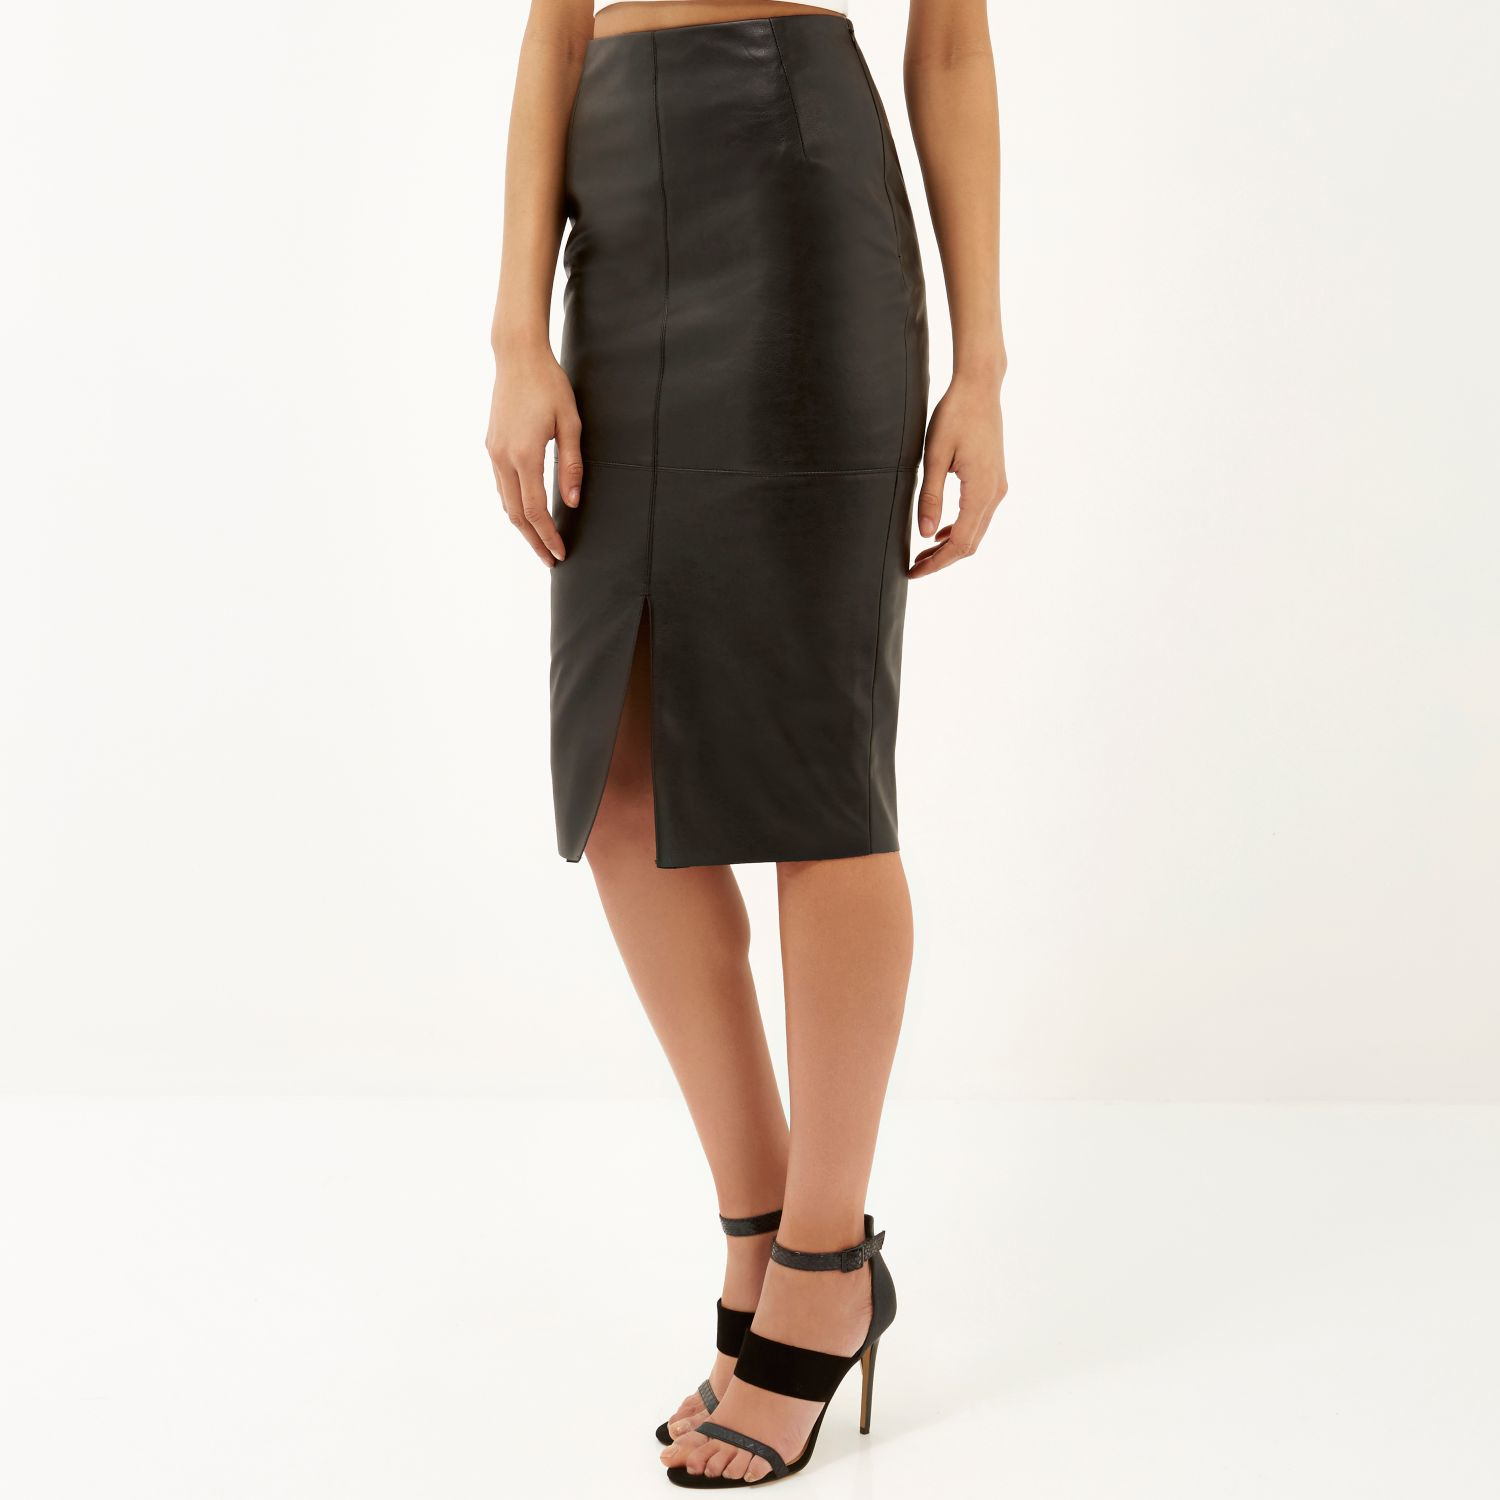 967e41a0b2 Red Leather Skirt River Island